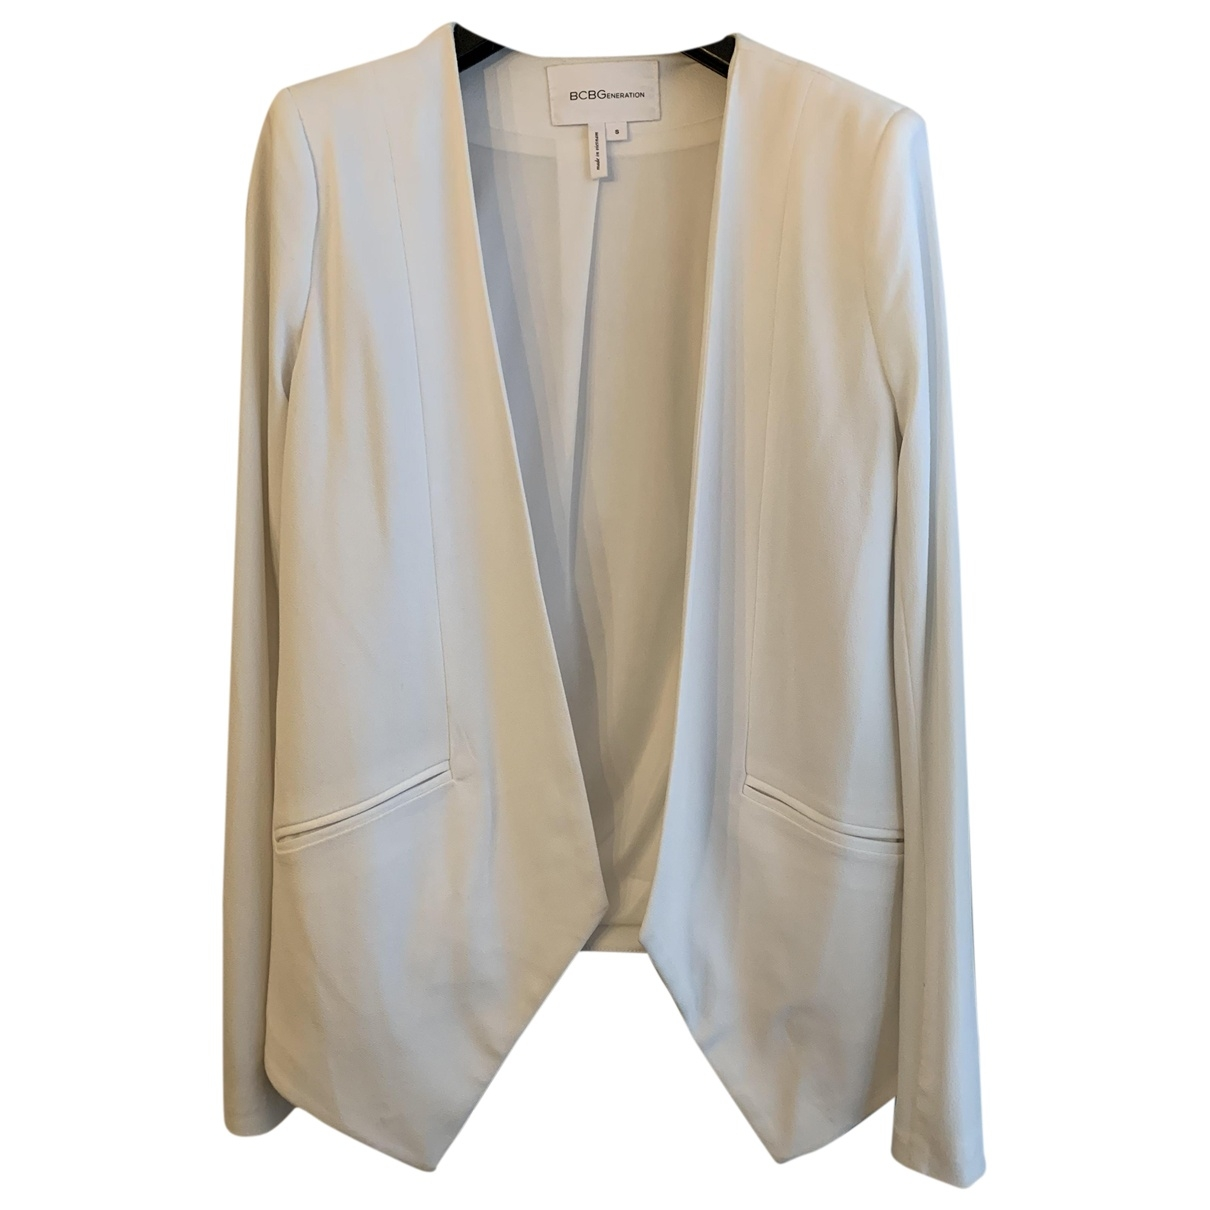 Bcbg Max Azria \N White jacket for Women S International